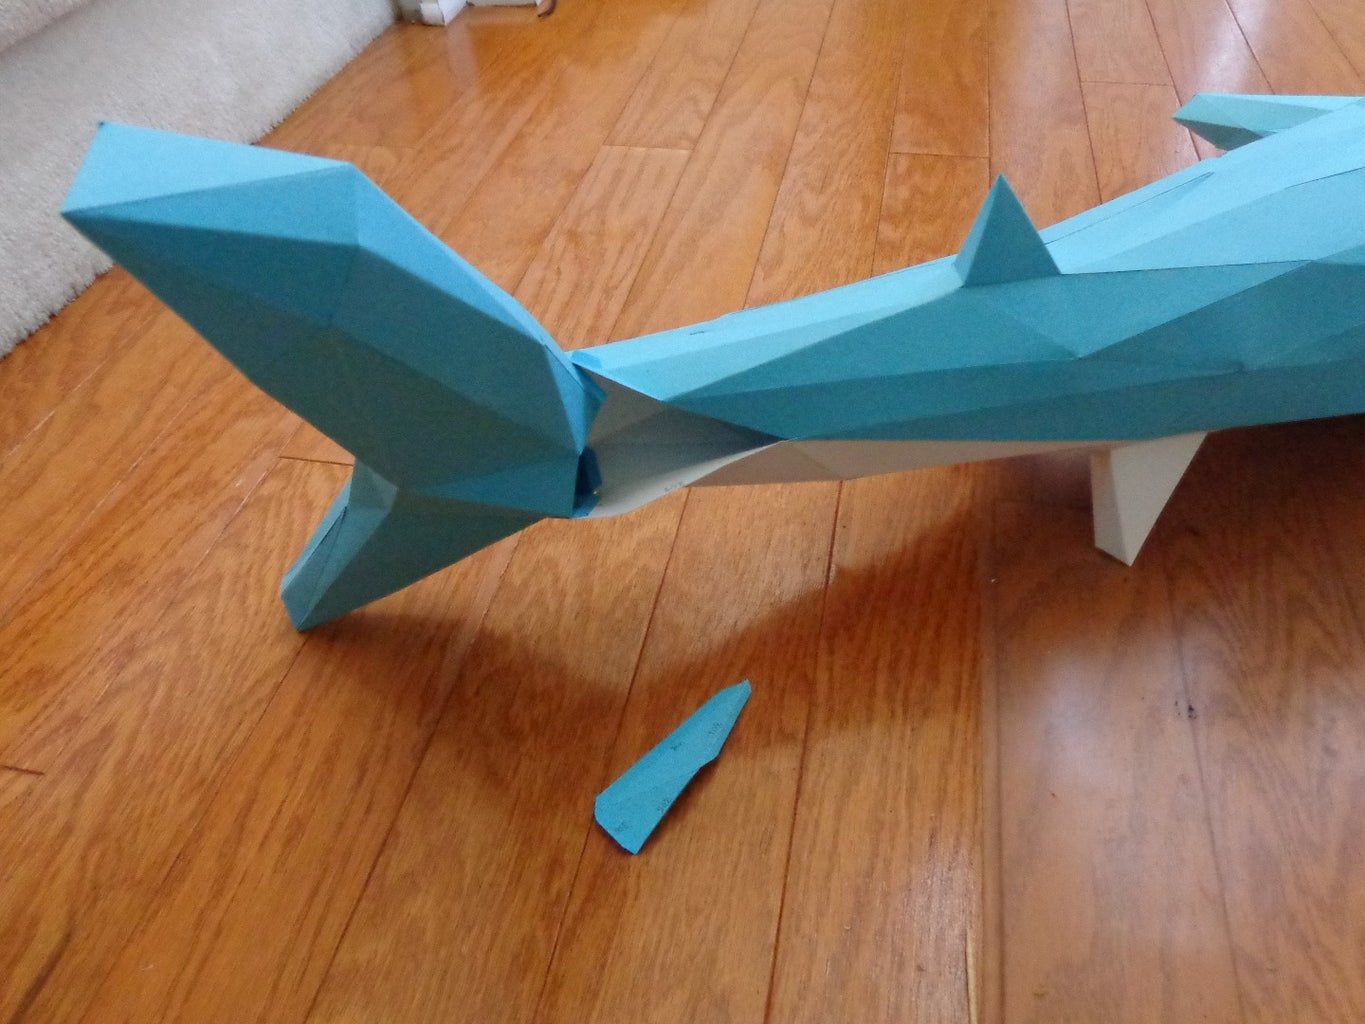 Add the Tail Fin